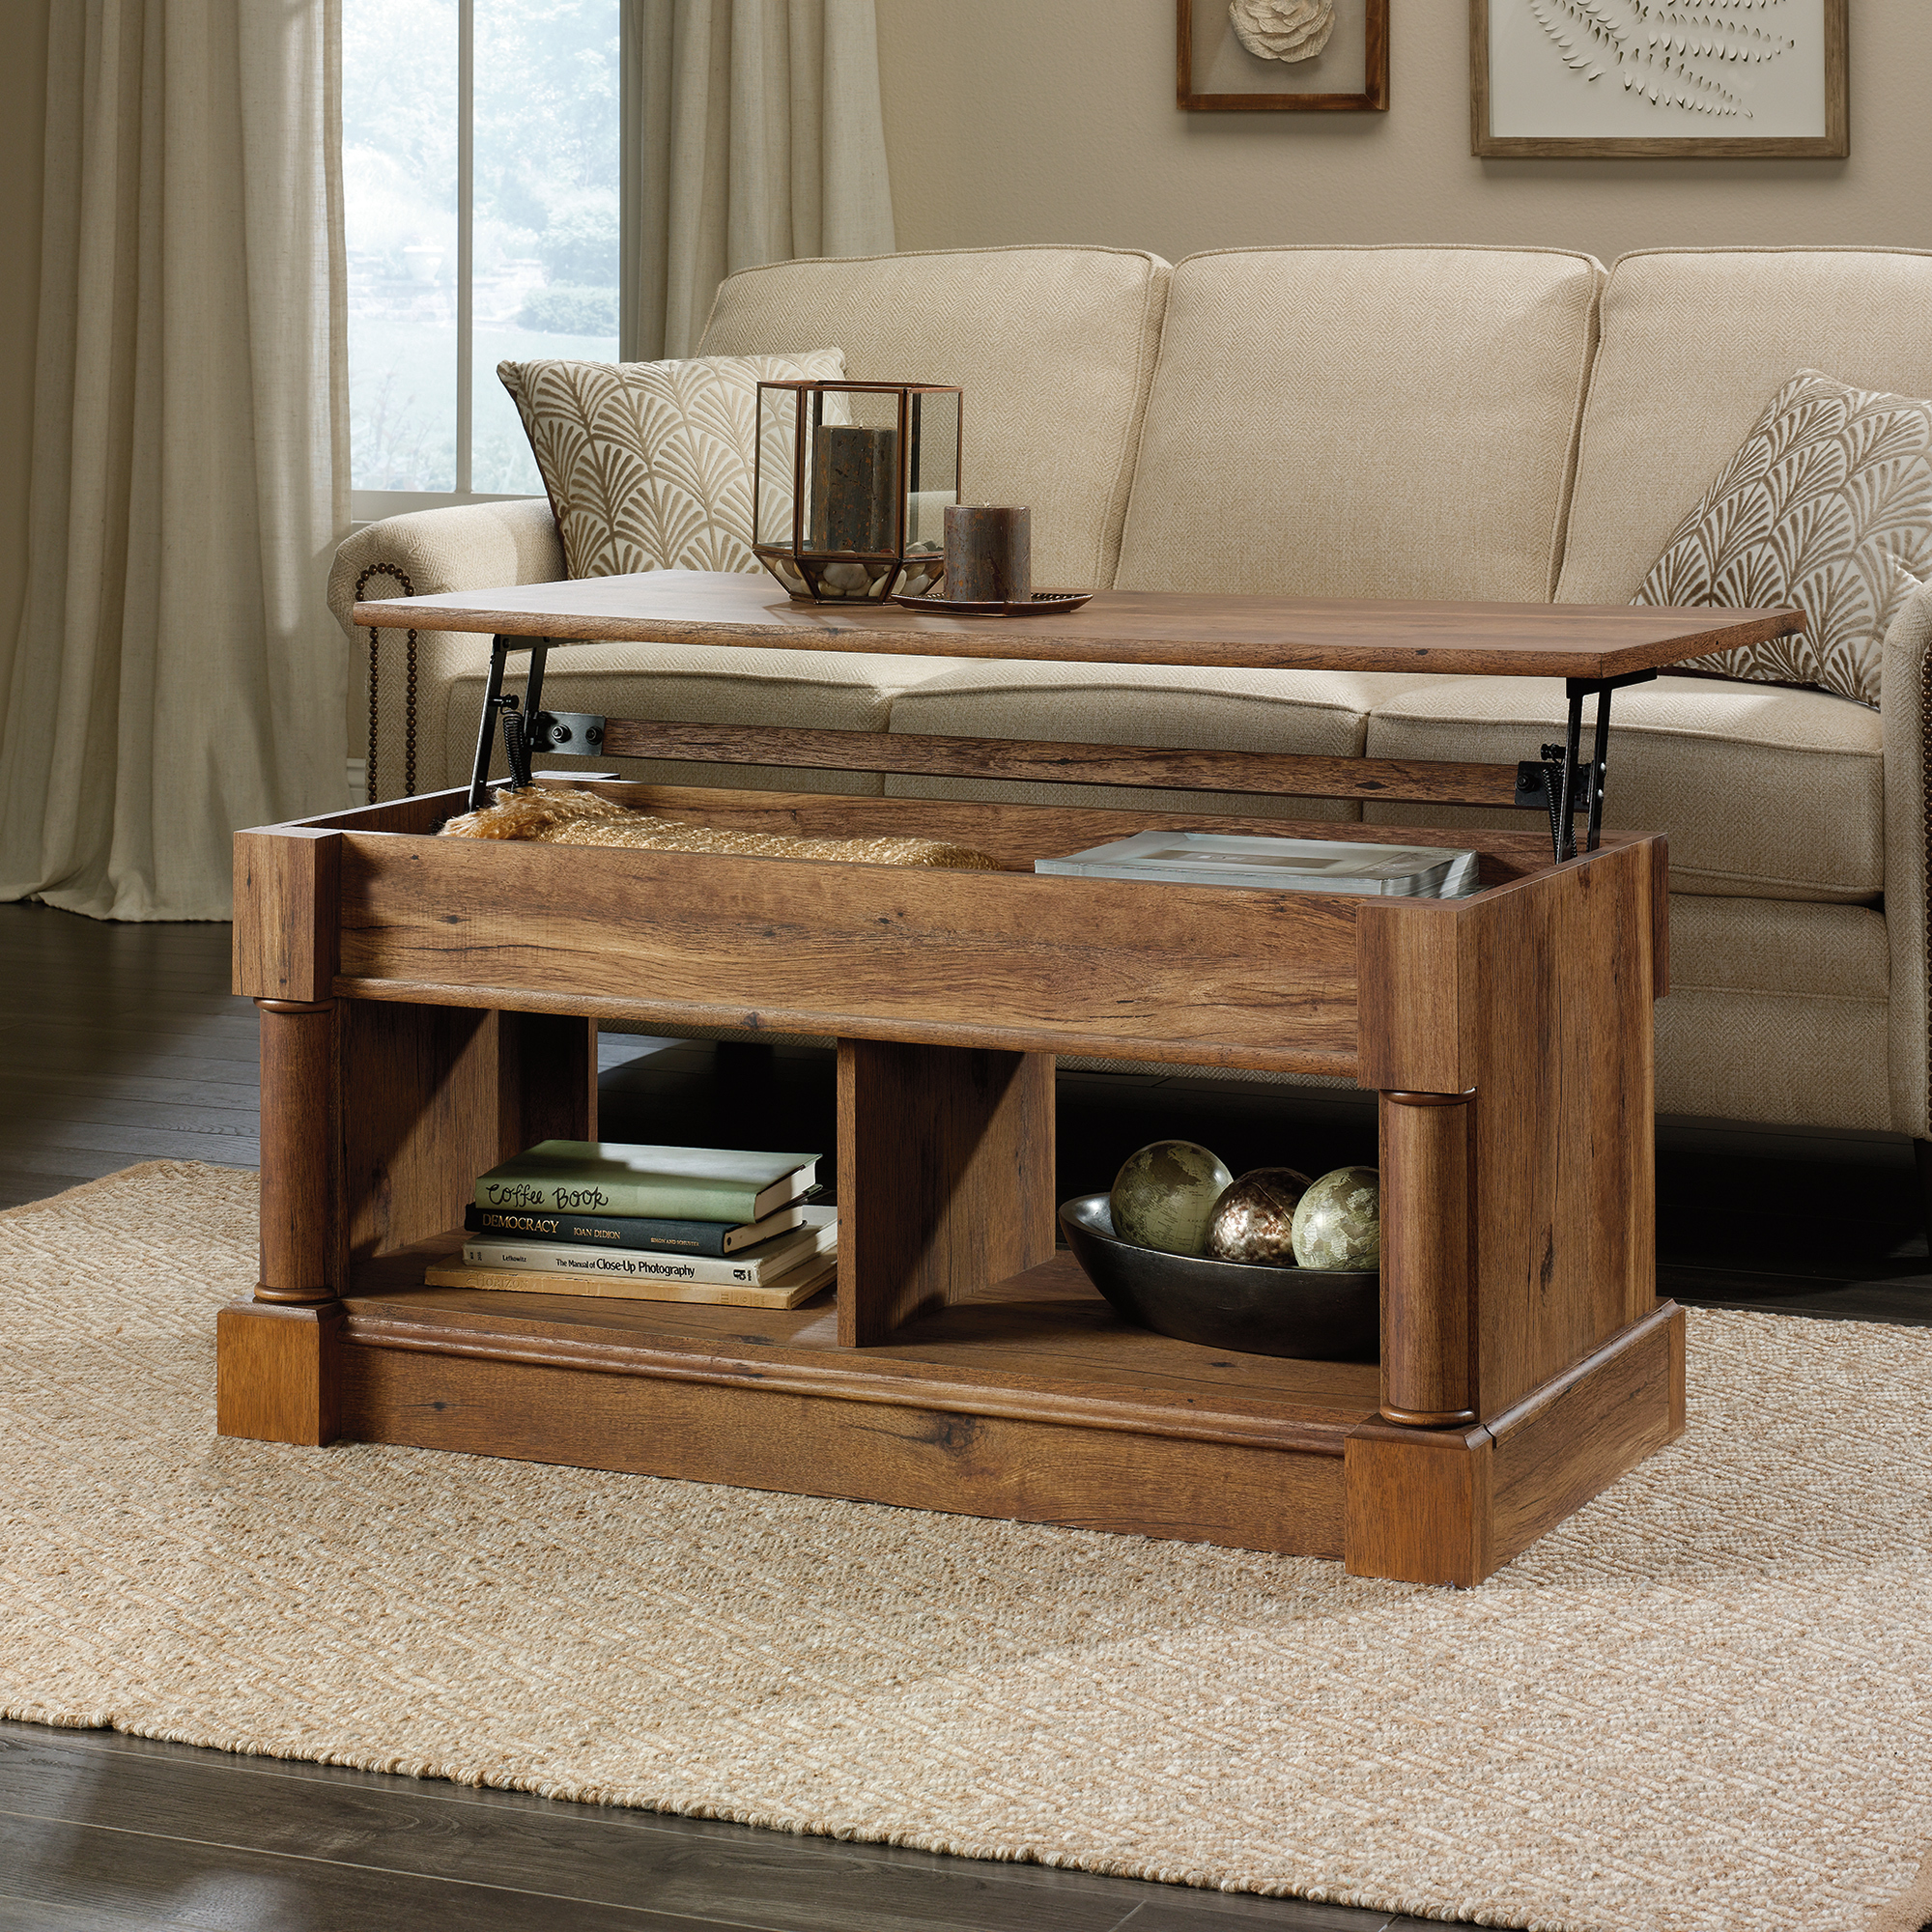 Sauder Palladia Lift Top Coffee Table Reviews Temple Webster